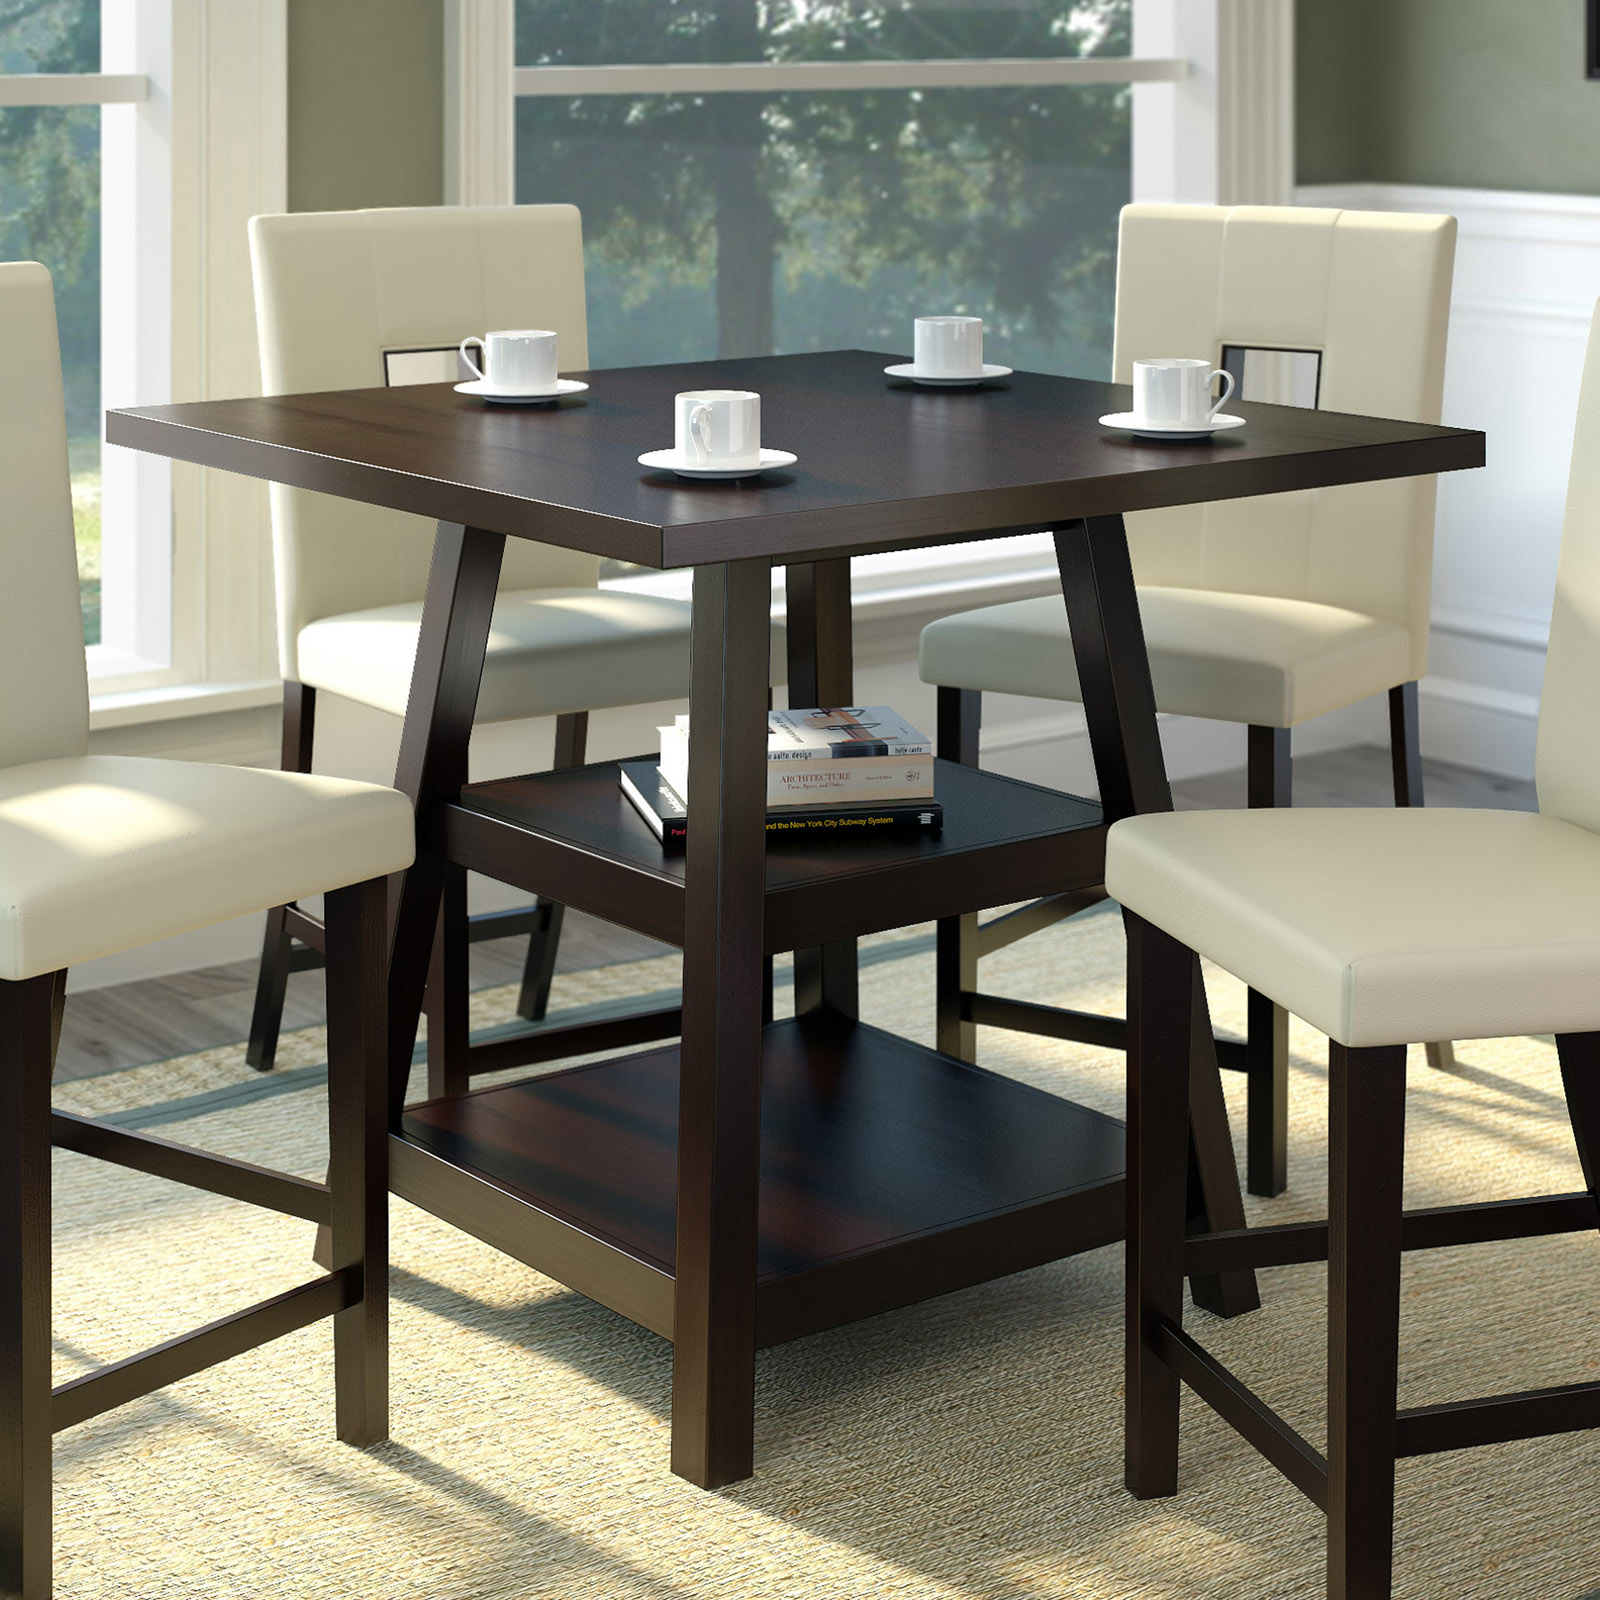 Corliving Bistro Counter Height Dining Table With Shelves Regarding Current Romriell Bar Height Trestle Dining Tables (View 6 of 15)